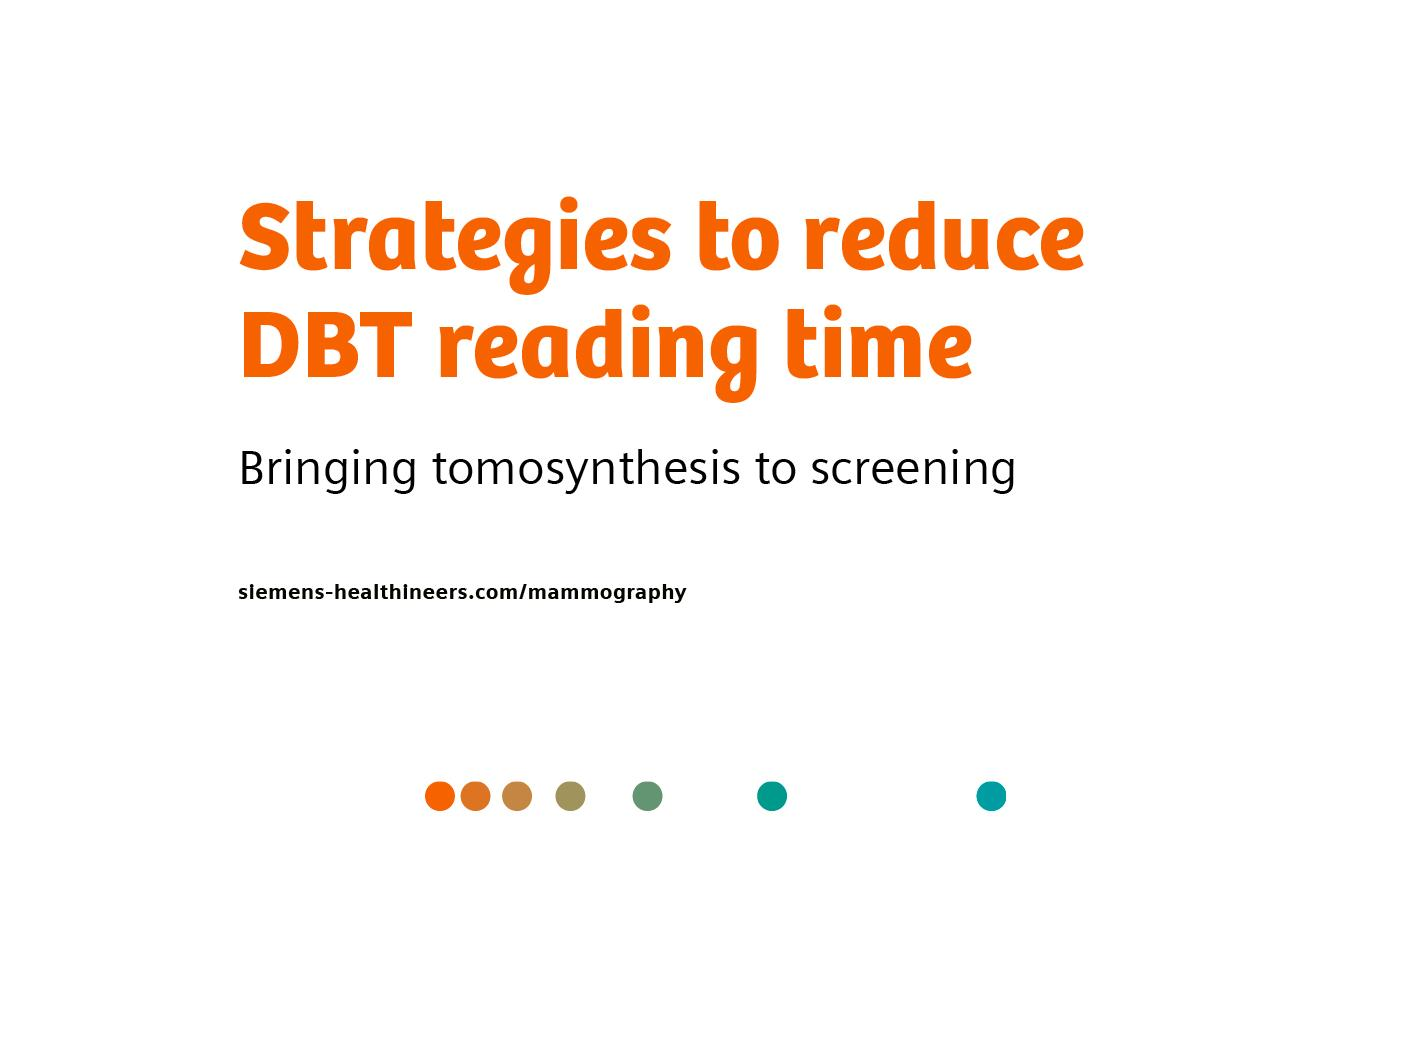 Strategies to reduce DBT reading time